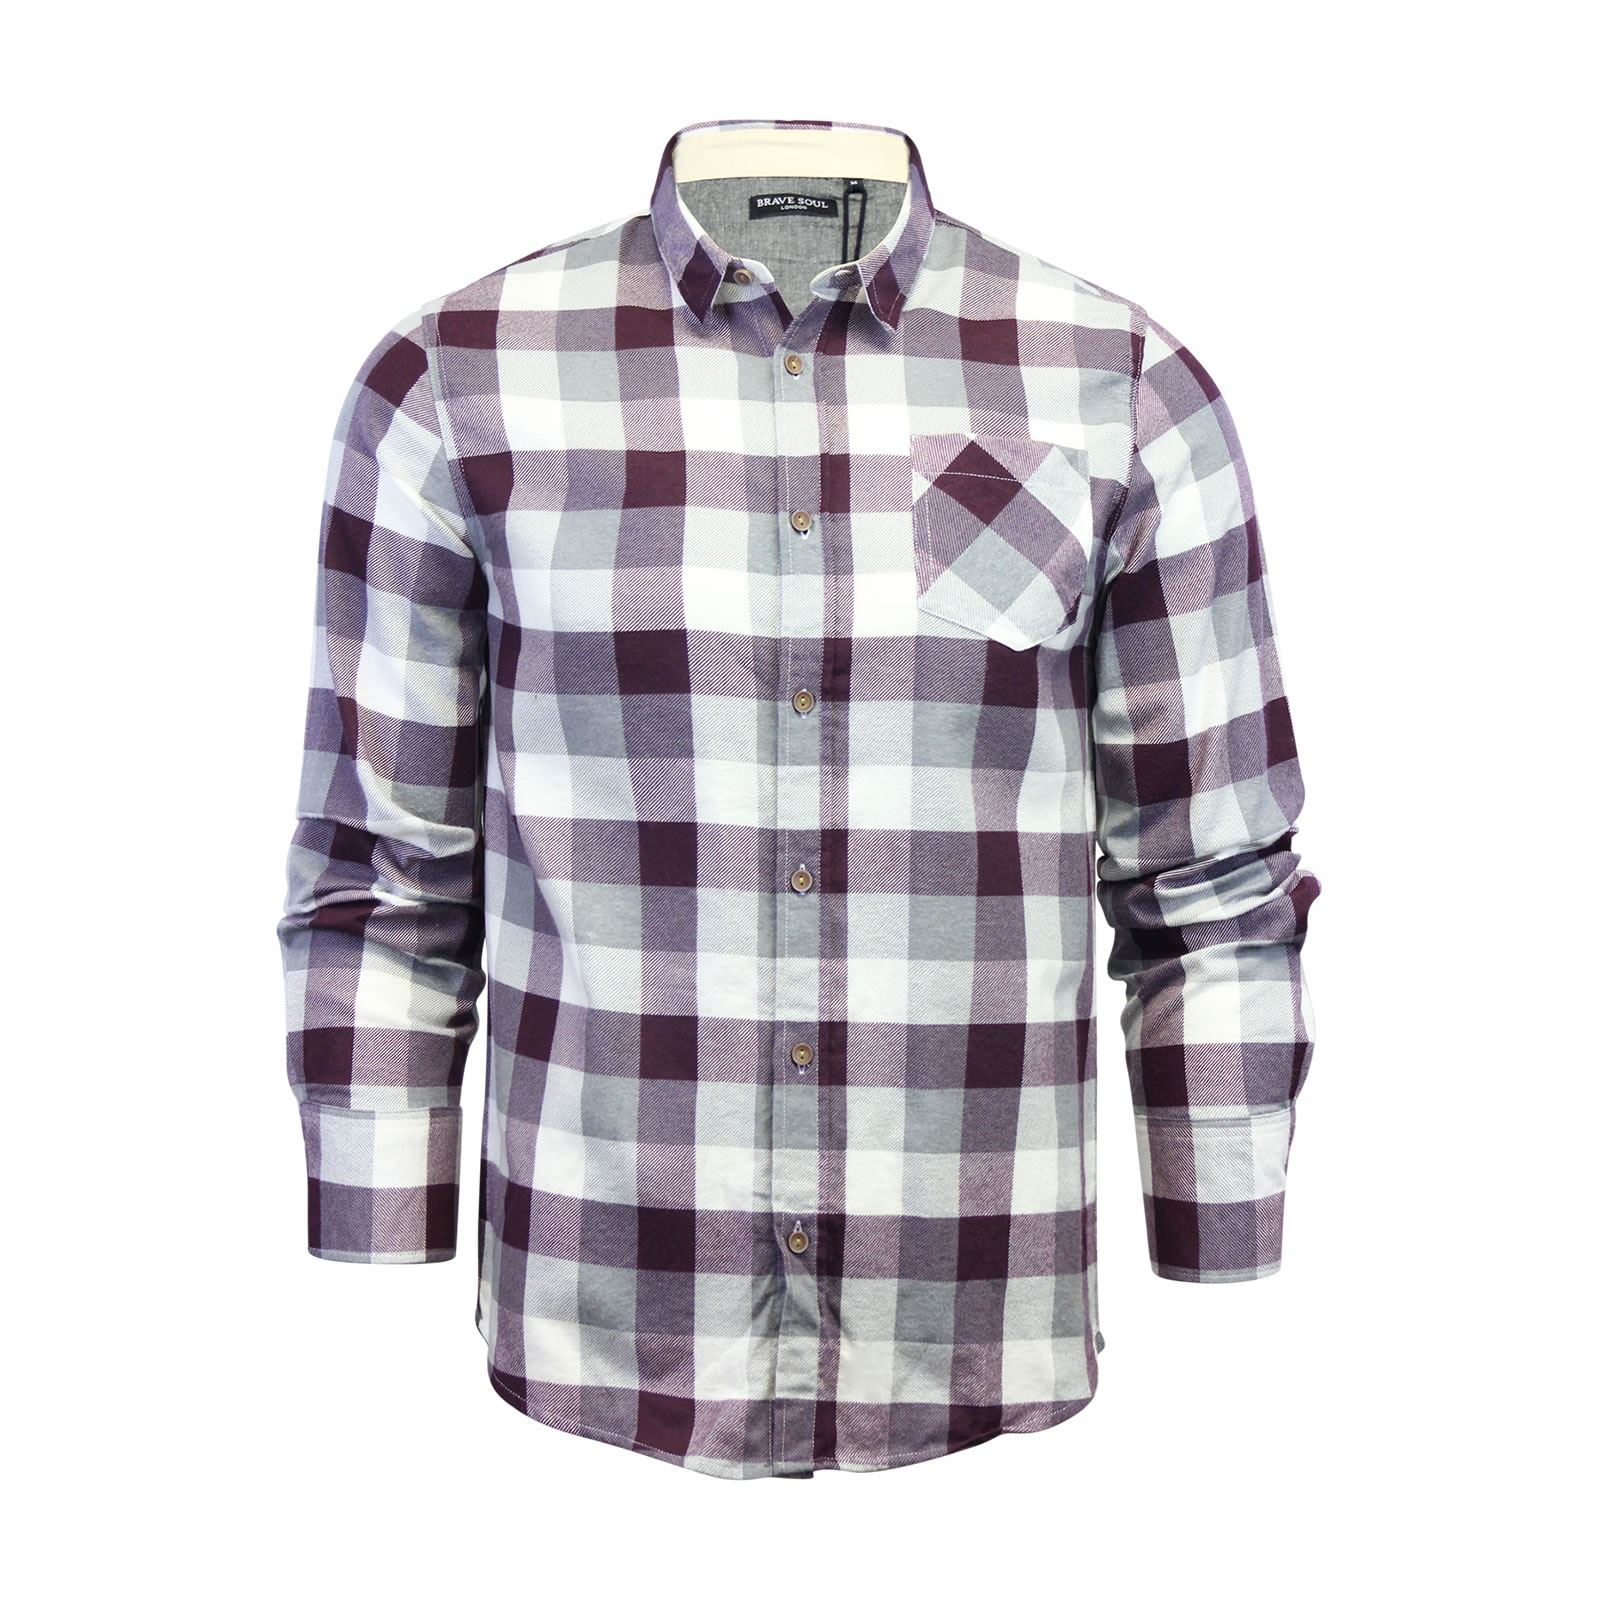 Brave-Soul-Mens-Check-Shirt-Flannel-Brushed-Cotton-Long-Sleeve-Casual-Top thumbnail 64